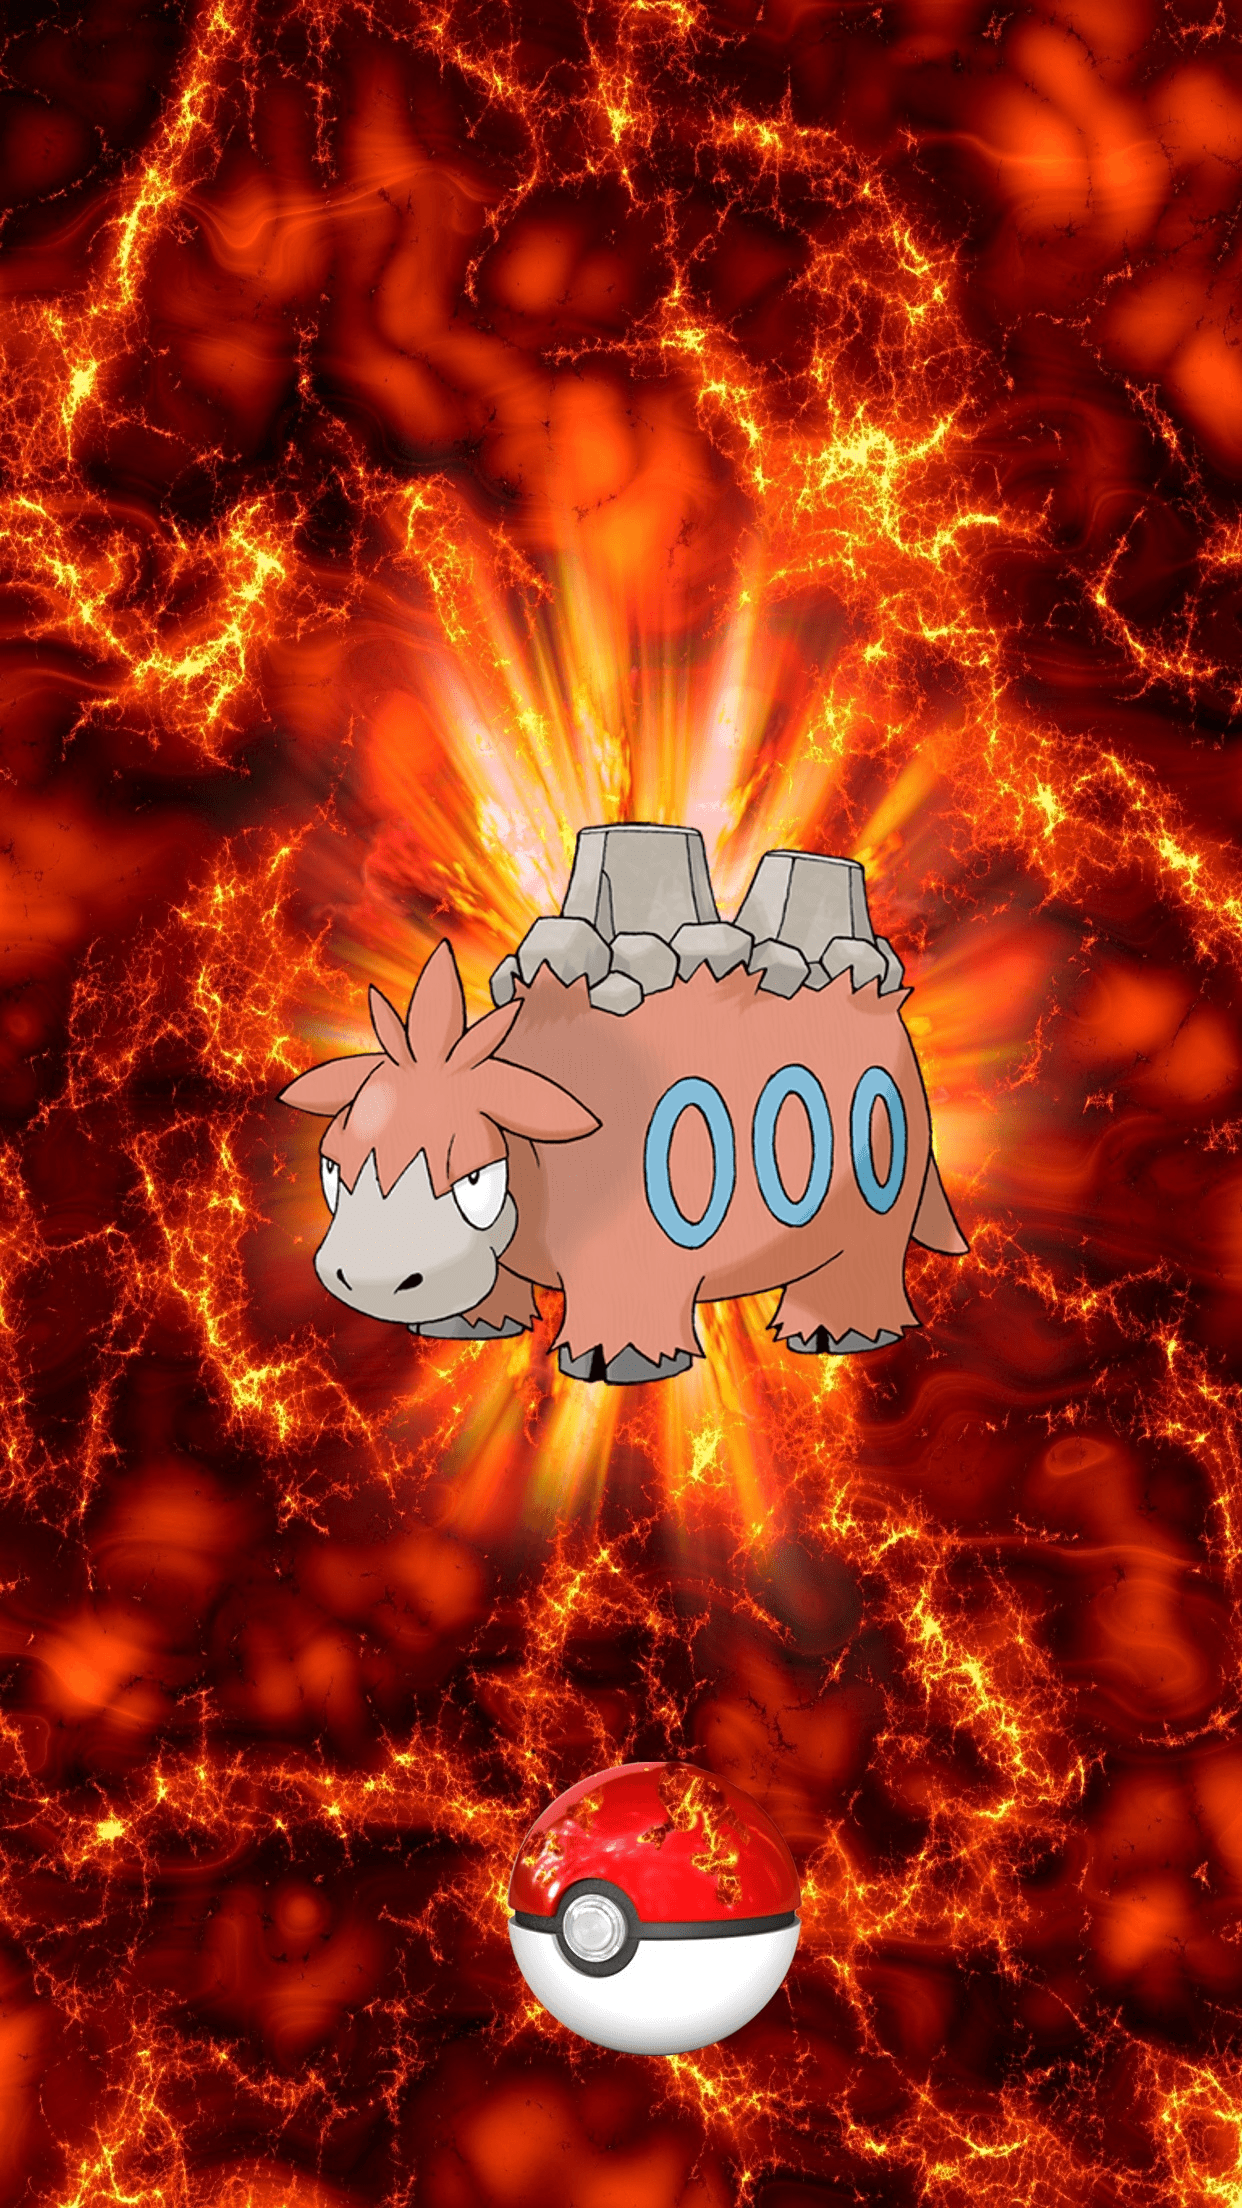 323 Fire Pokeball Camerupt Bakuuda 17 Numel | Wallpaper